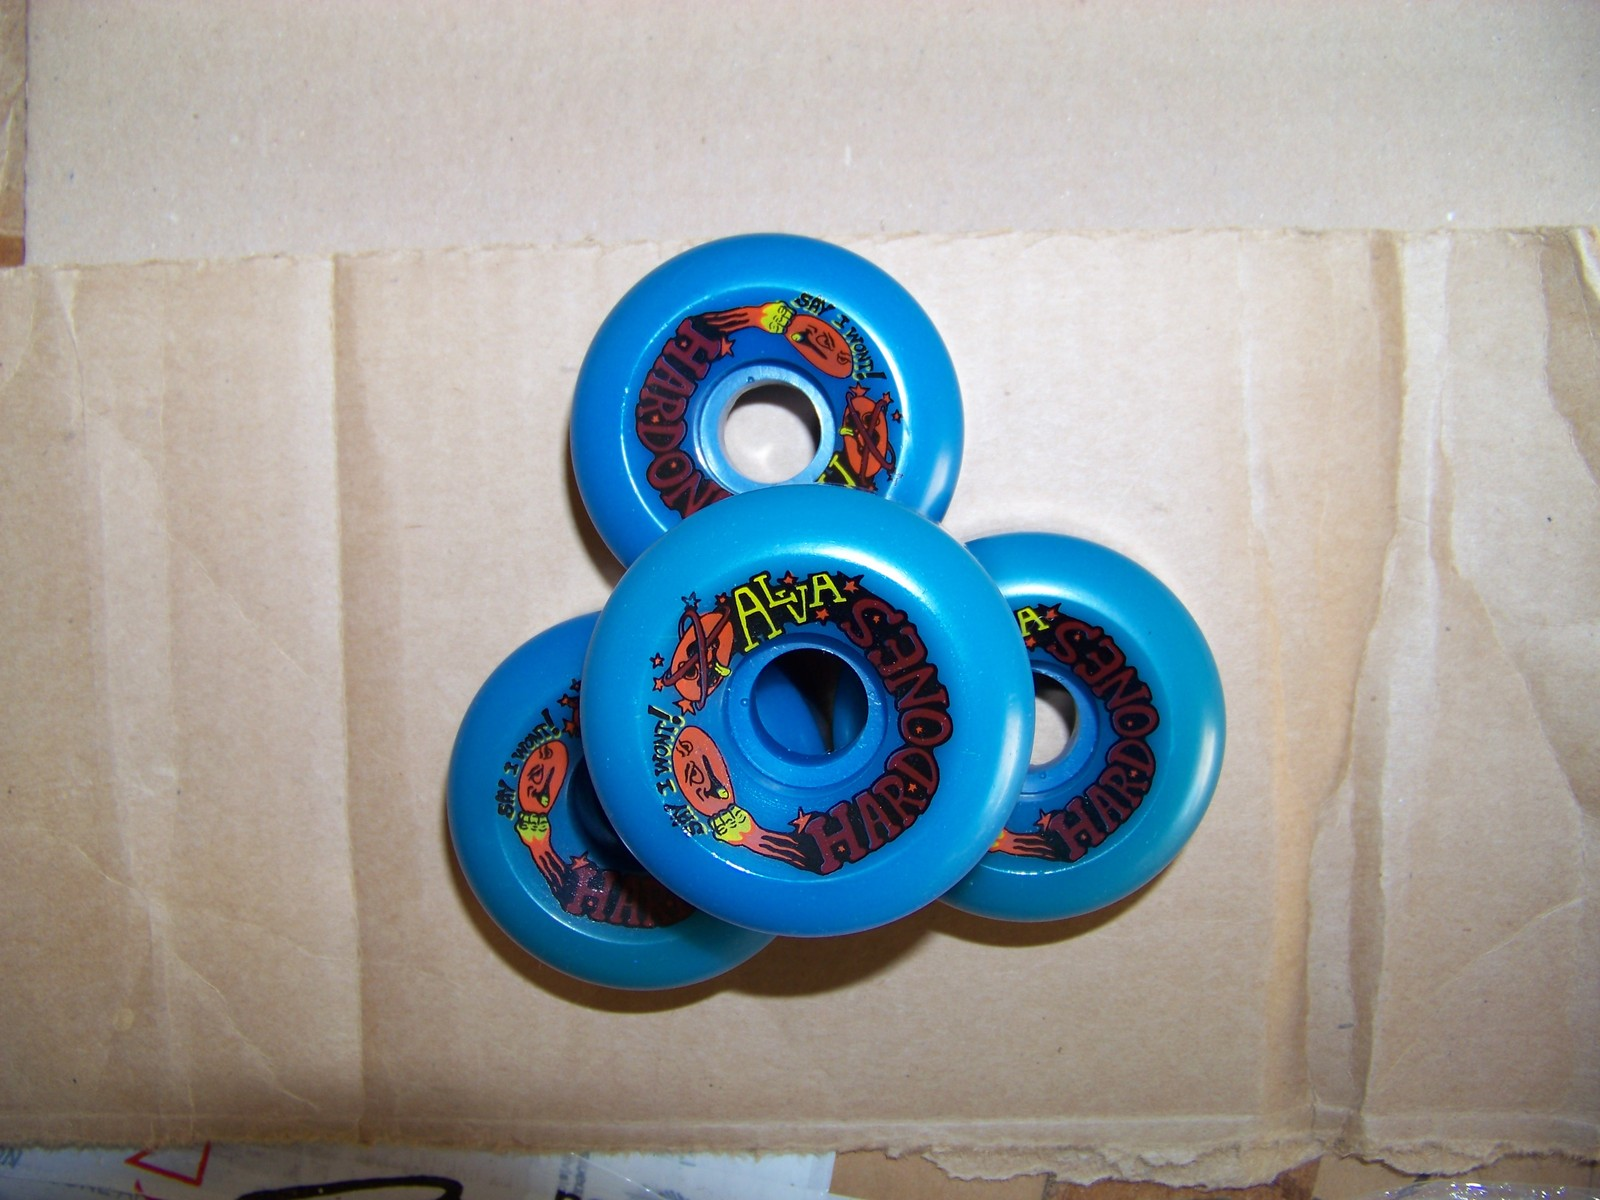 Vintage Alva Wheels. Mint. Only for true collectors of skateboard!